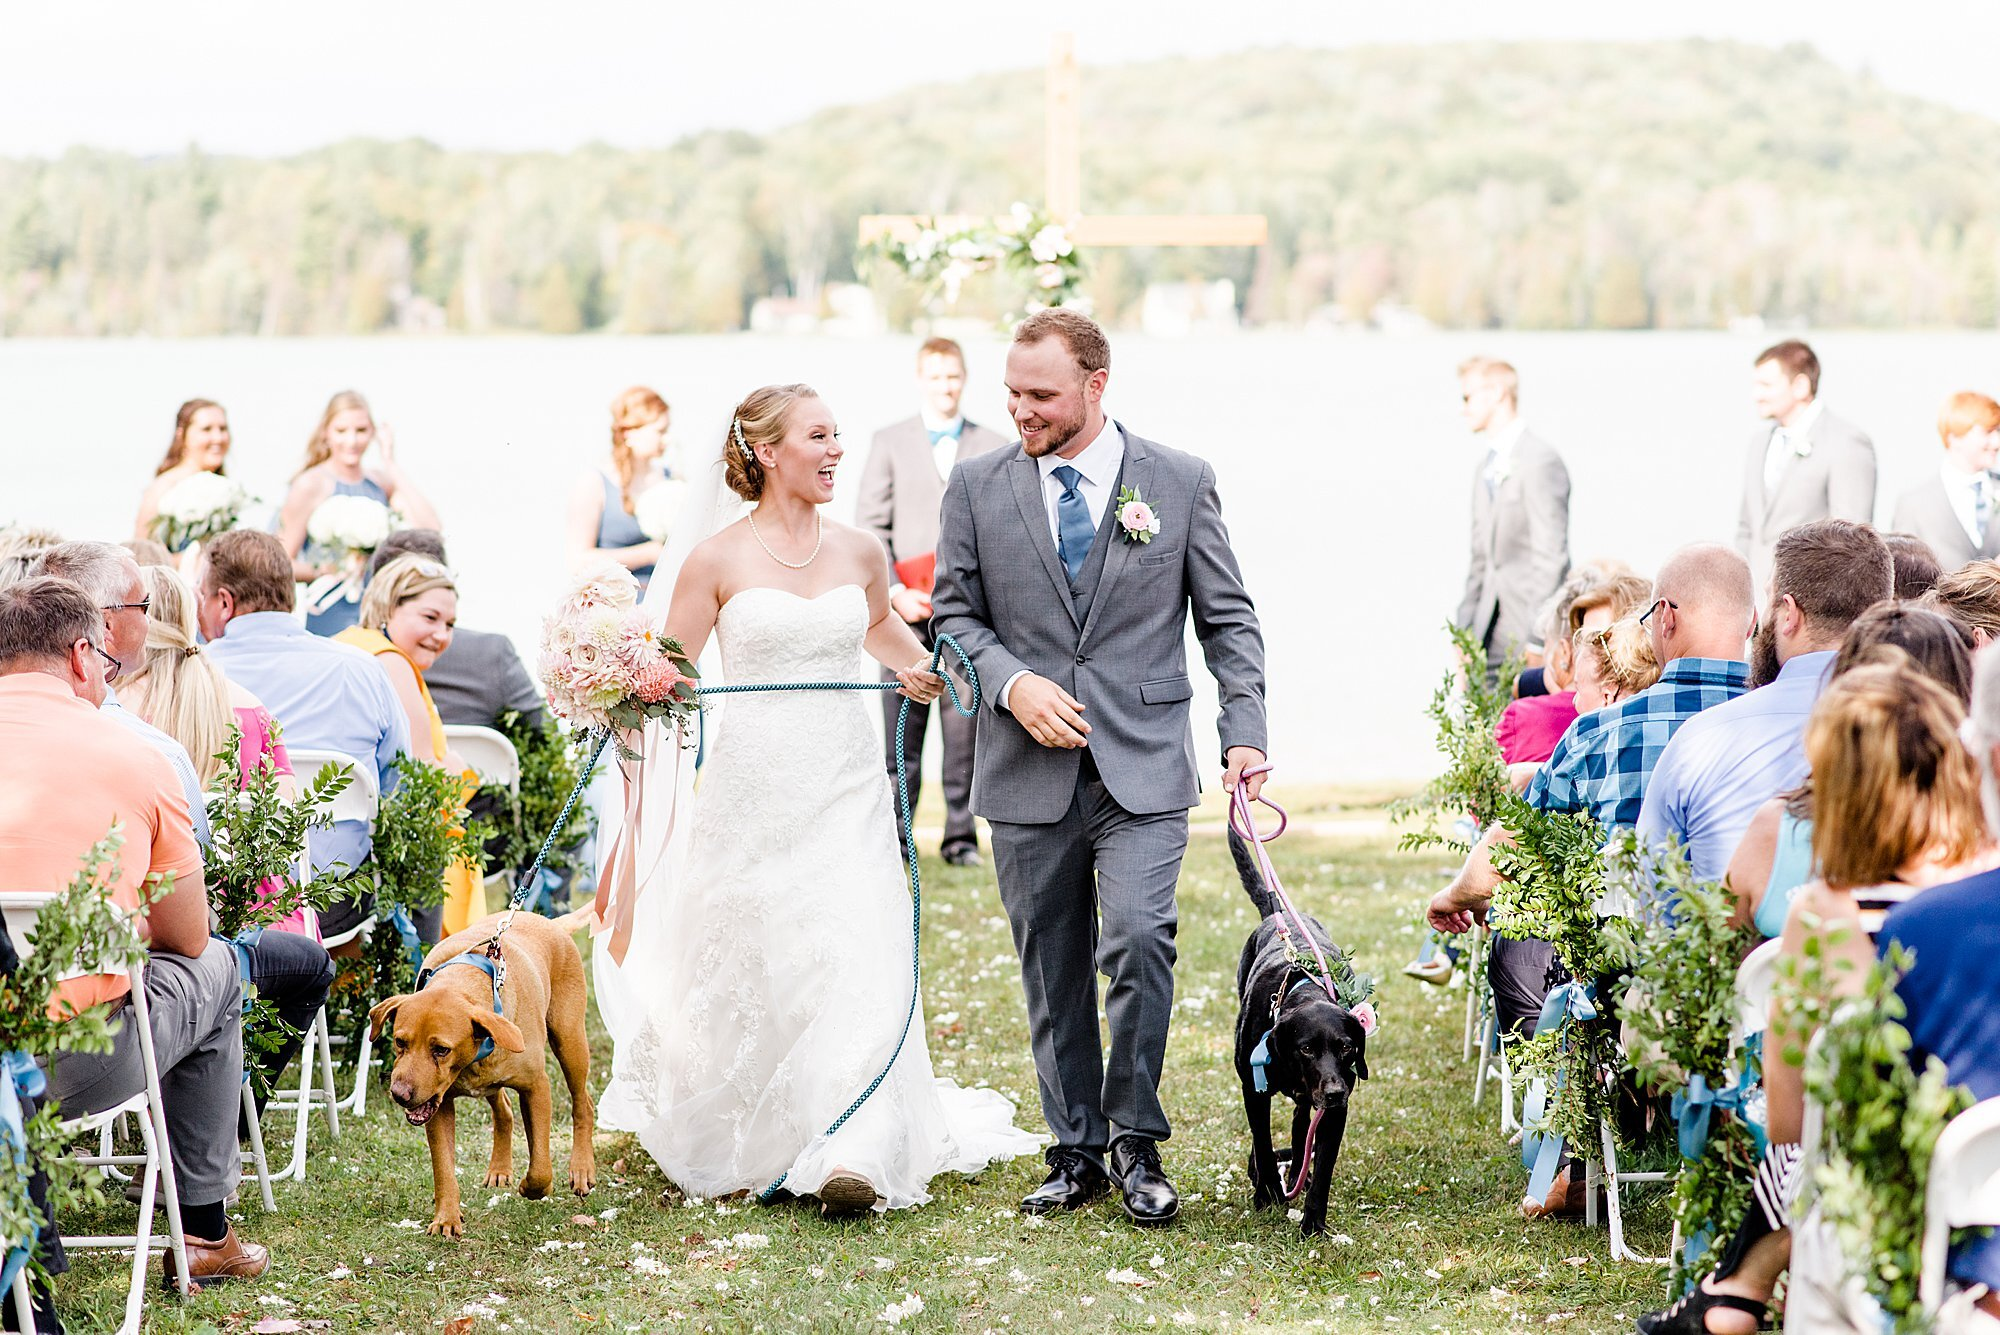 emily-chance-hayes-michigan-wedding-photography_0095.jpg